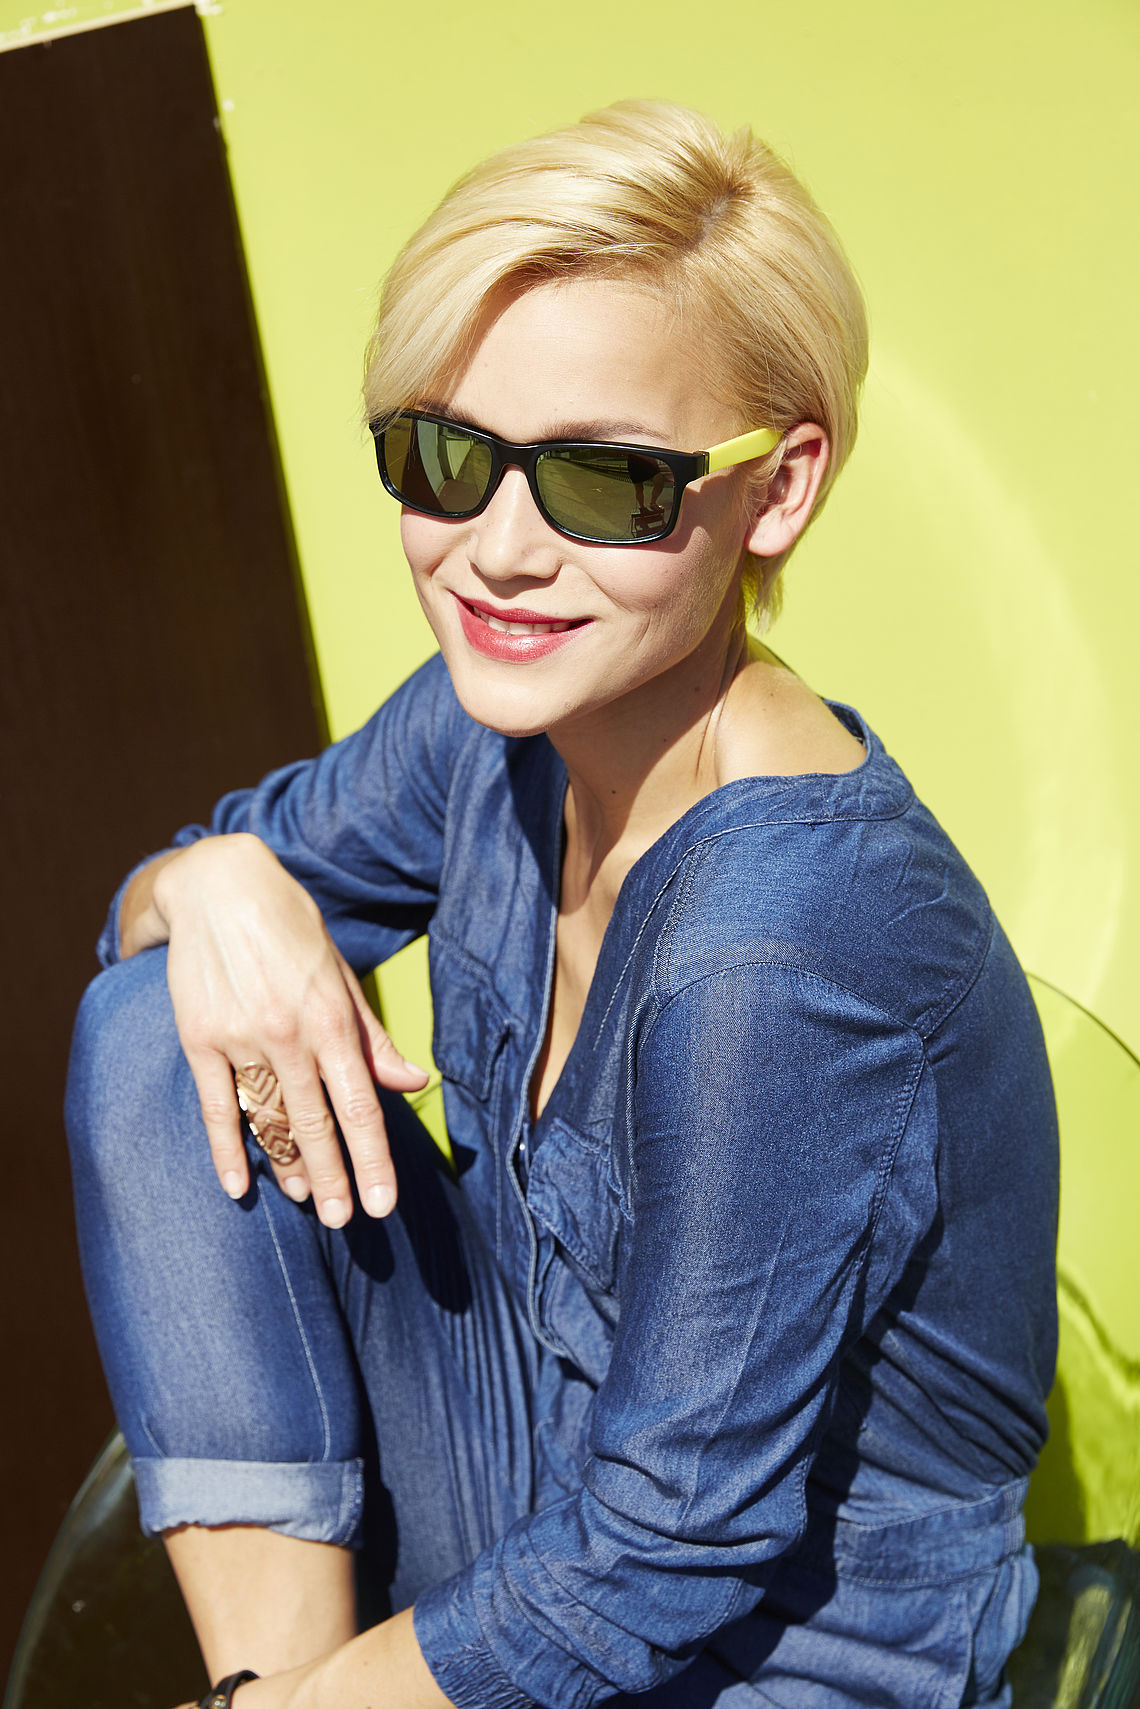 Blonde woman in front the door with sunglasses